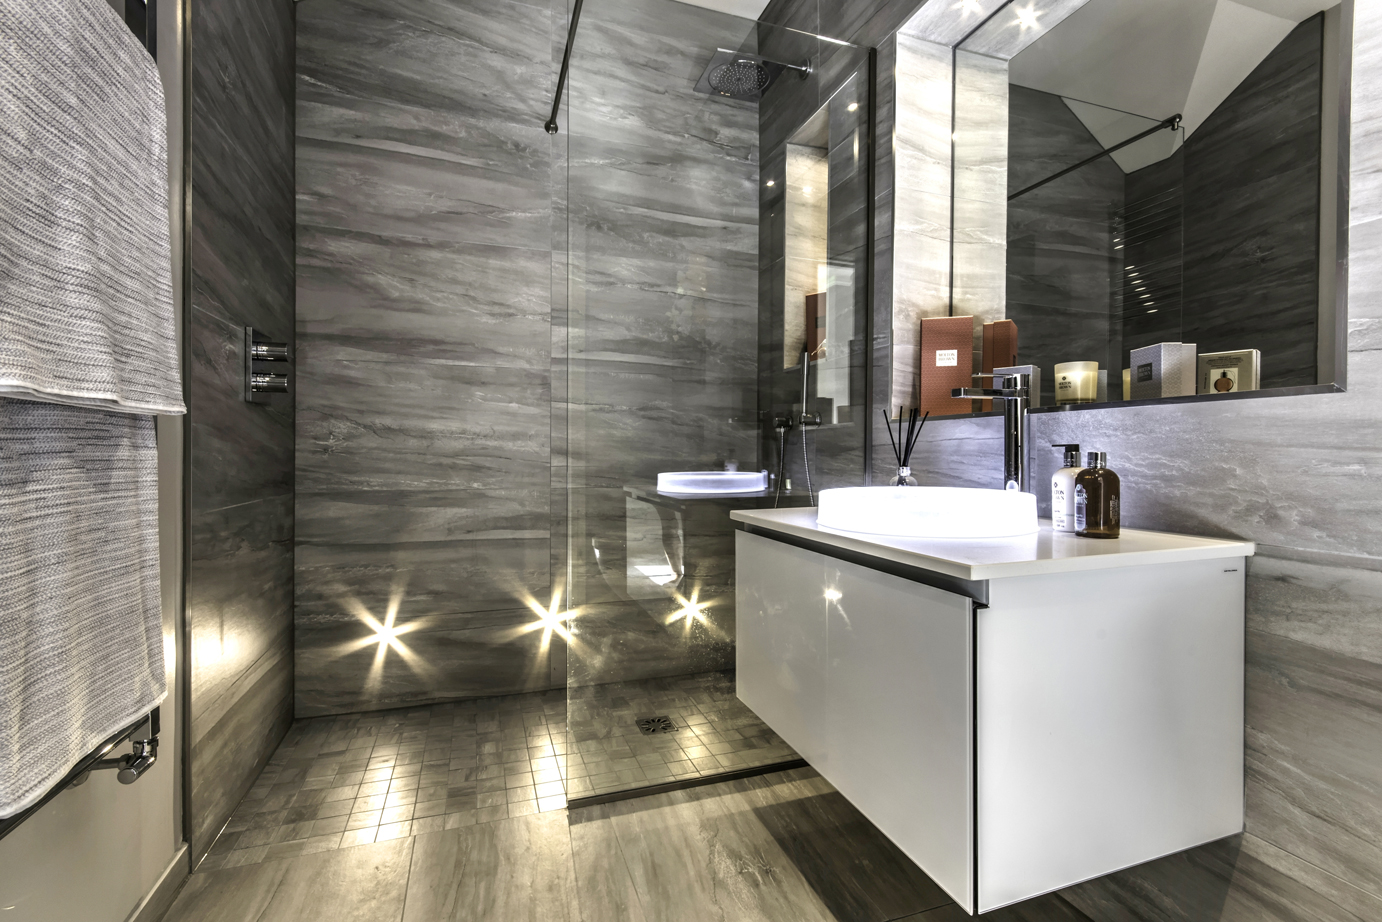 High End Bathroom Designs Luxury Bathroom Design Concept Design Page 2